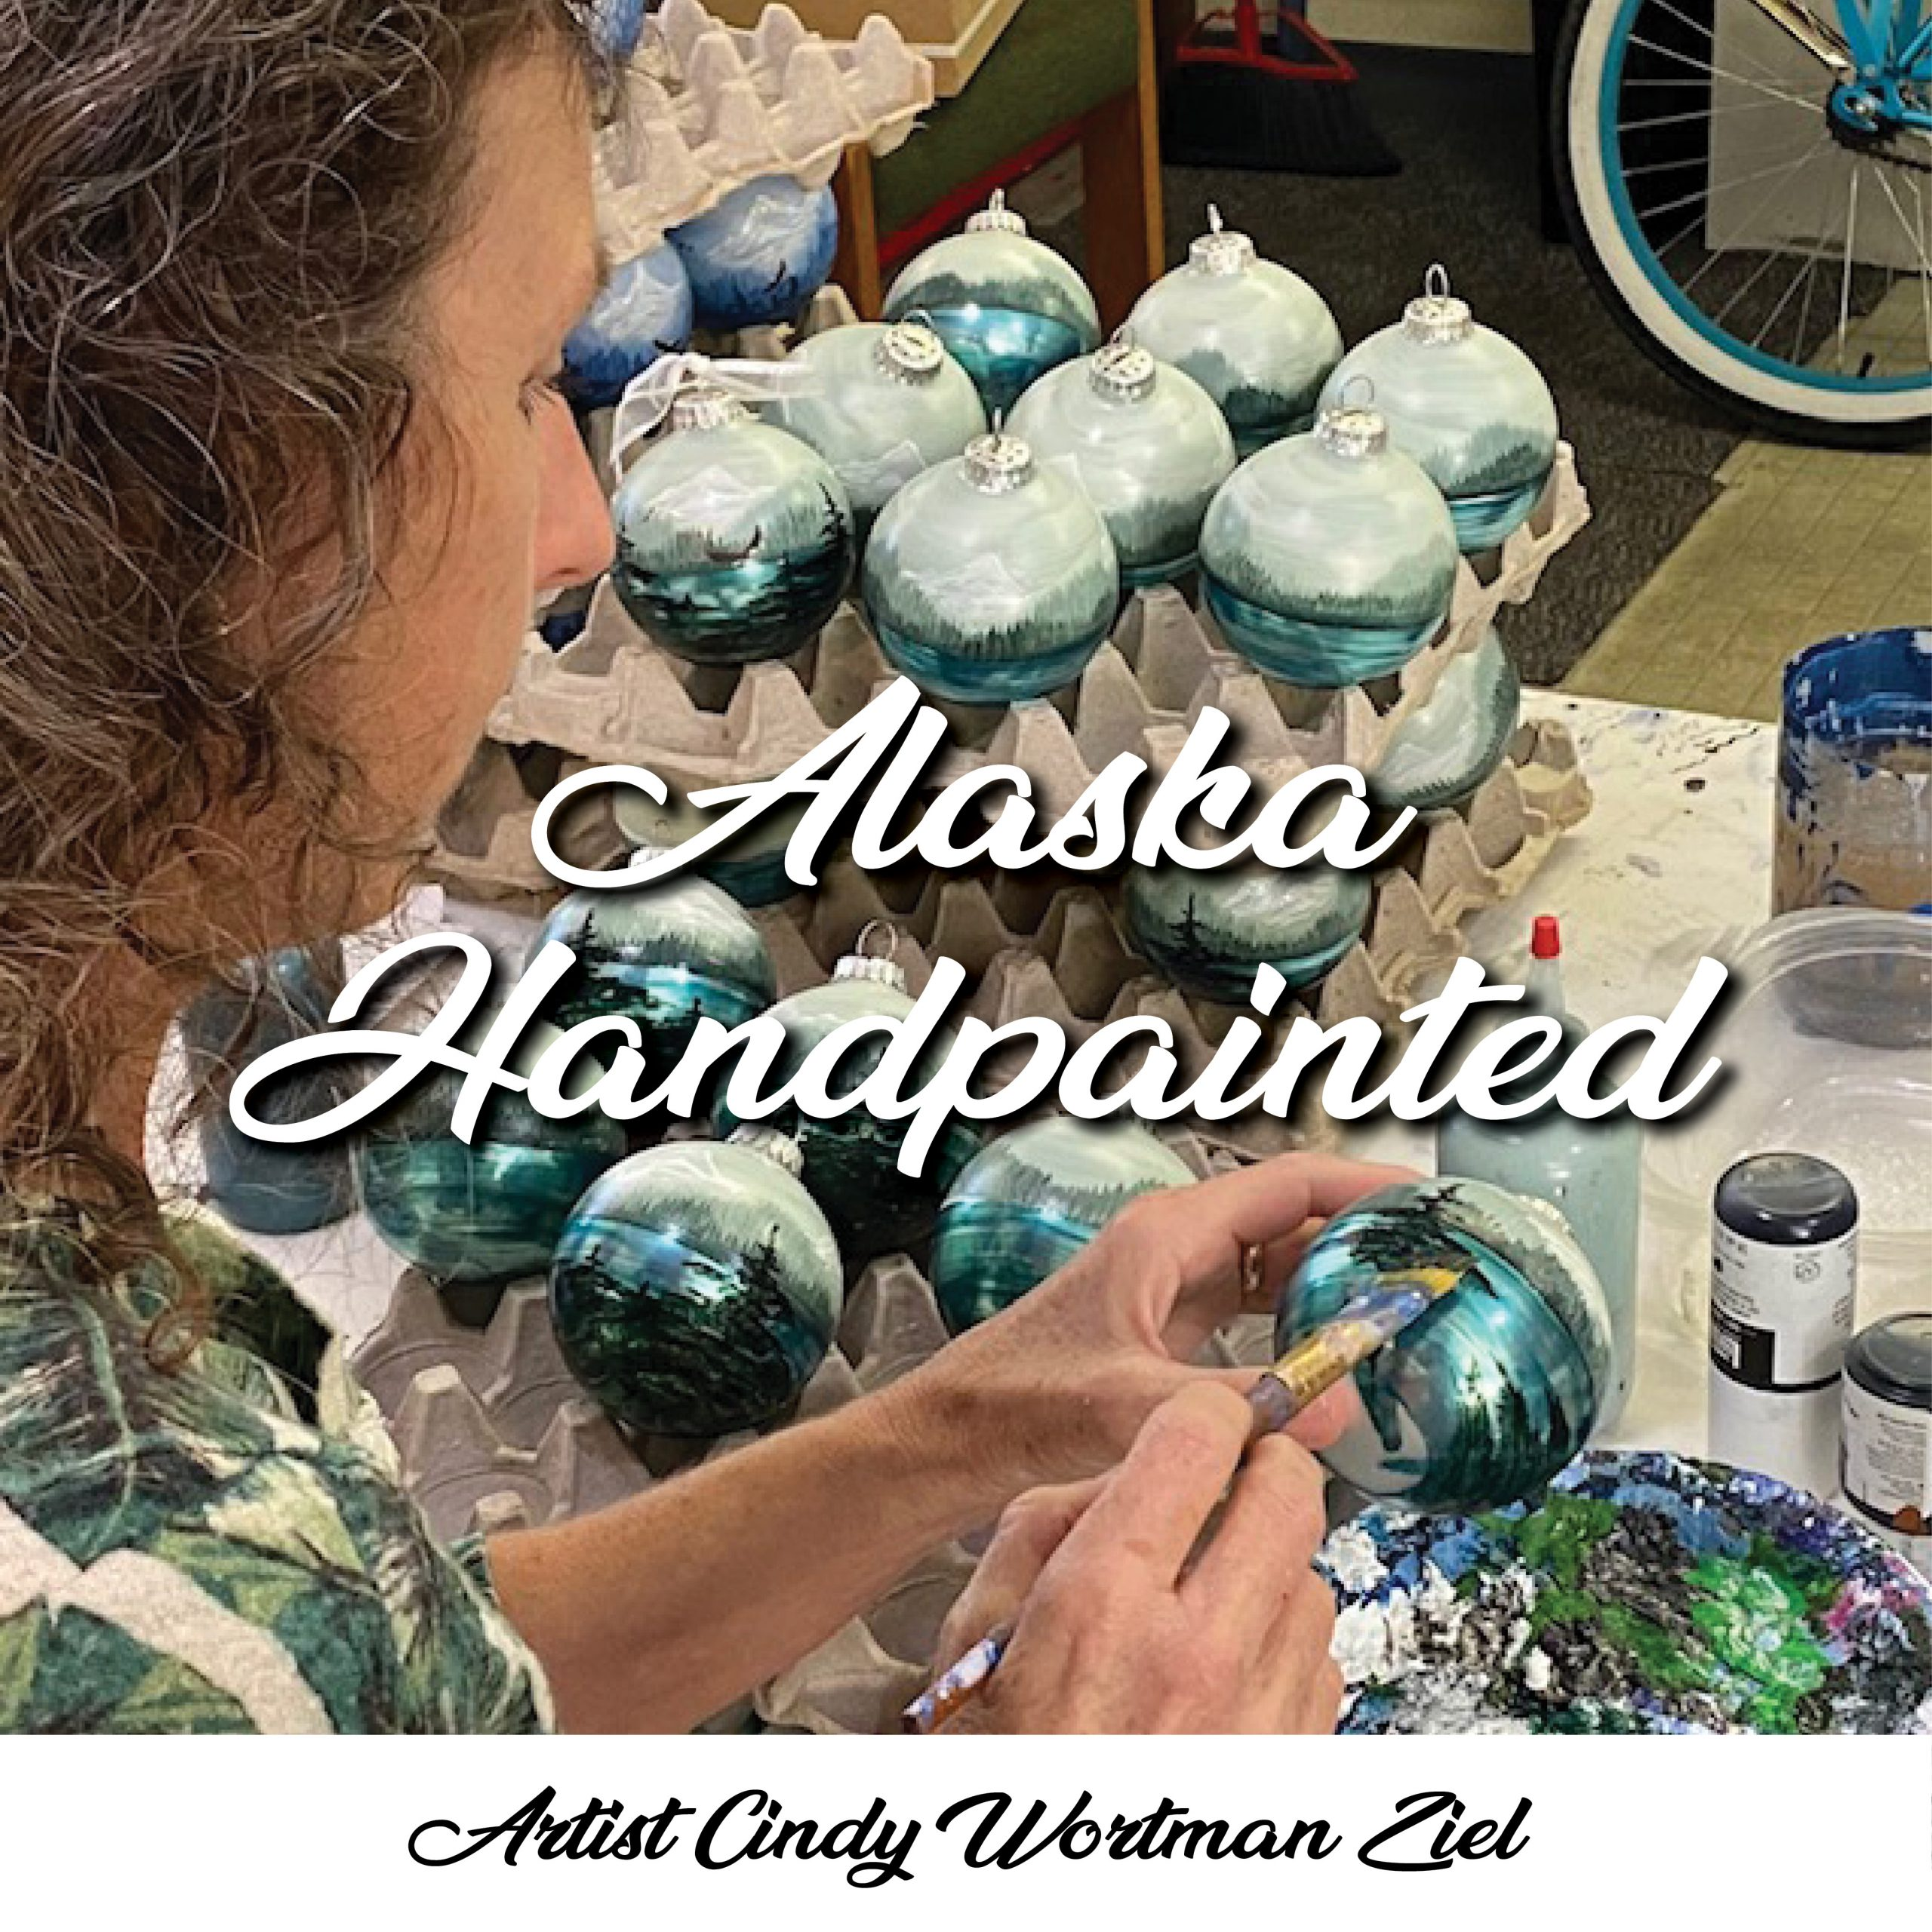 header_image_alaskahandpainted